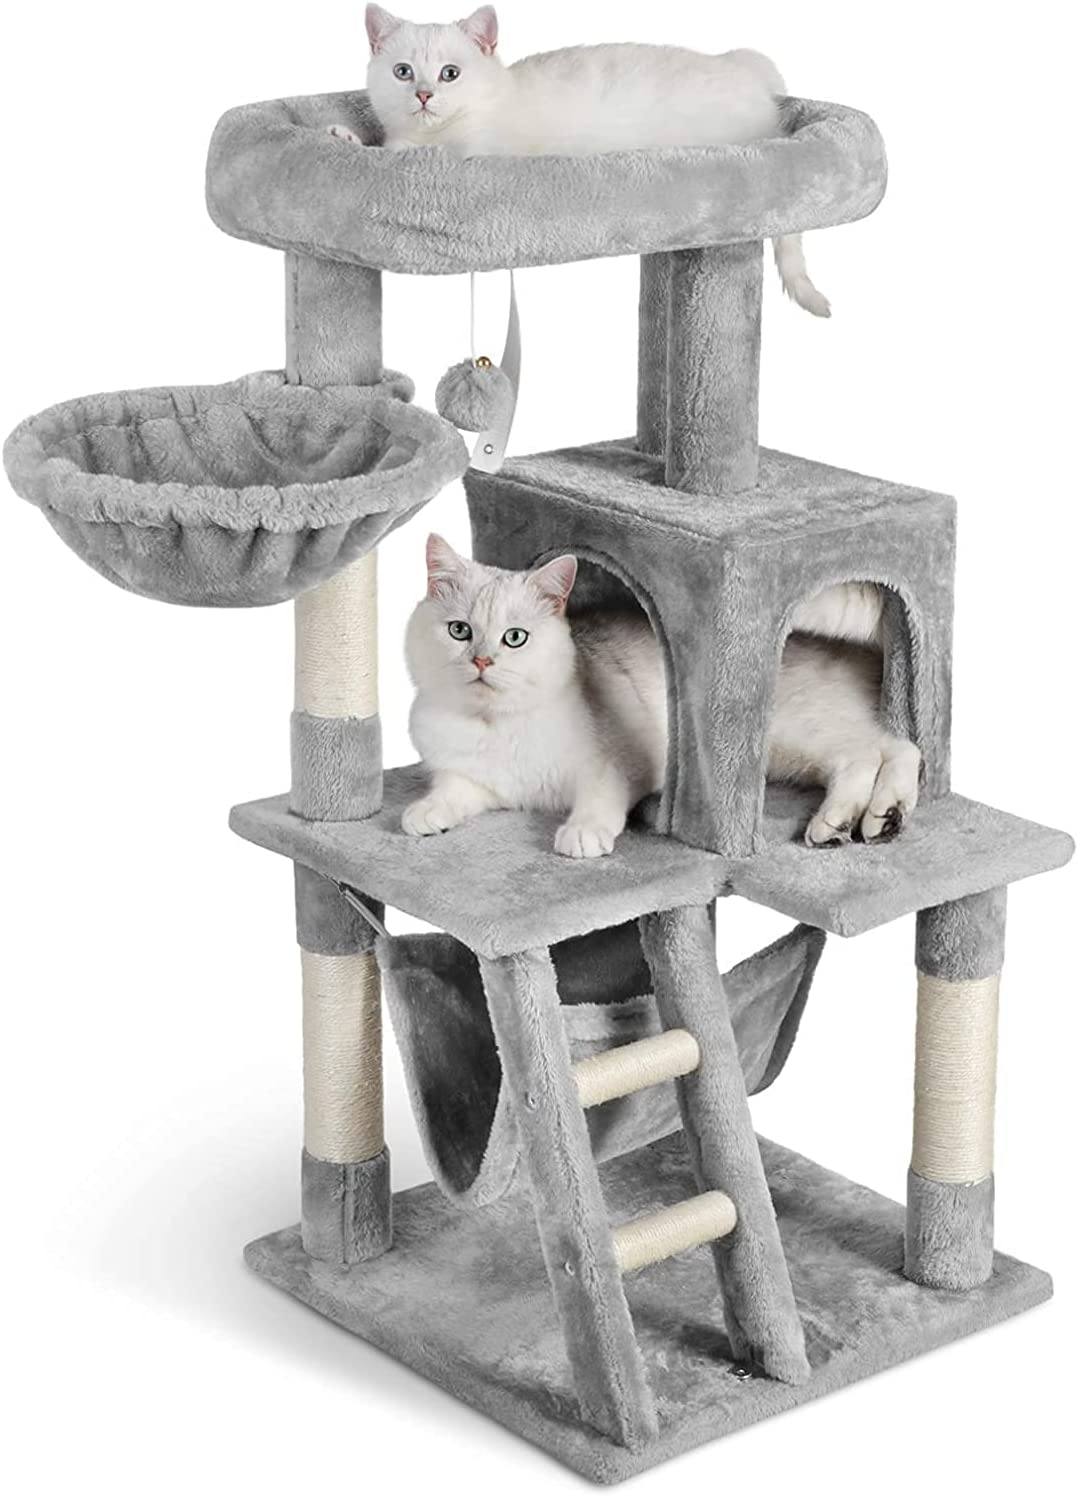 """Dooradar Cat Tower 39"""" Cat Tree Multi-Level Cat House Condo Furniture with Scratching Posts & Climbing Ladder Kitten Kitty Stand Play House Activity Center for Indoor Cats to Play & Rest, Gray"""